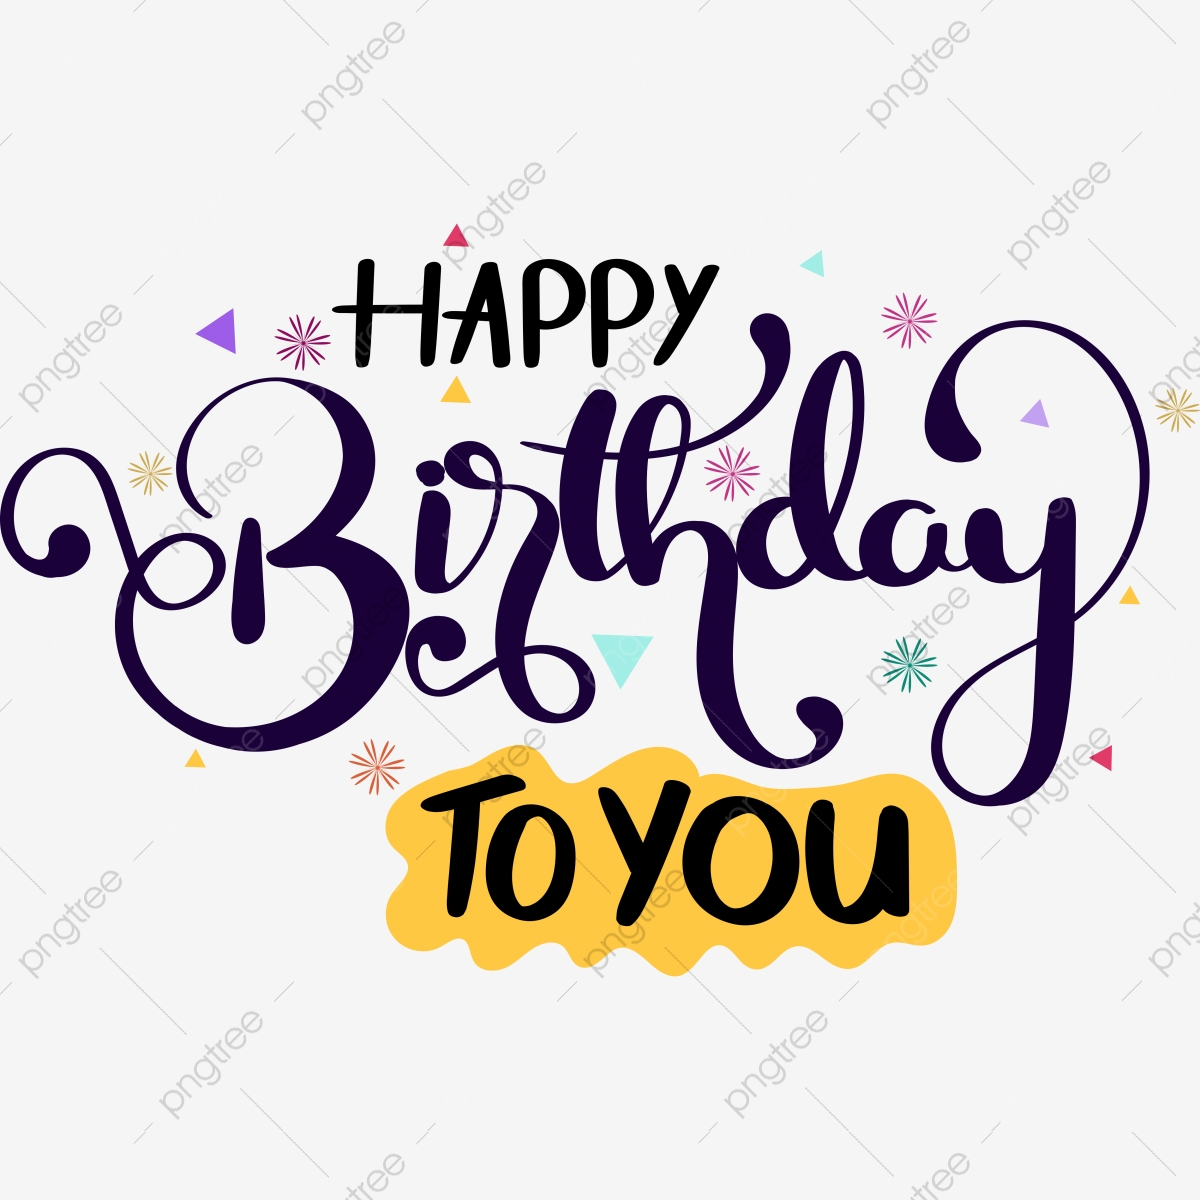 Happy Birthday To You Text Lettering With Confetti Happy Birthday Happy Birthday To You Happy Birthday Clipart Png And Vector With Transparent Background For Free Download